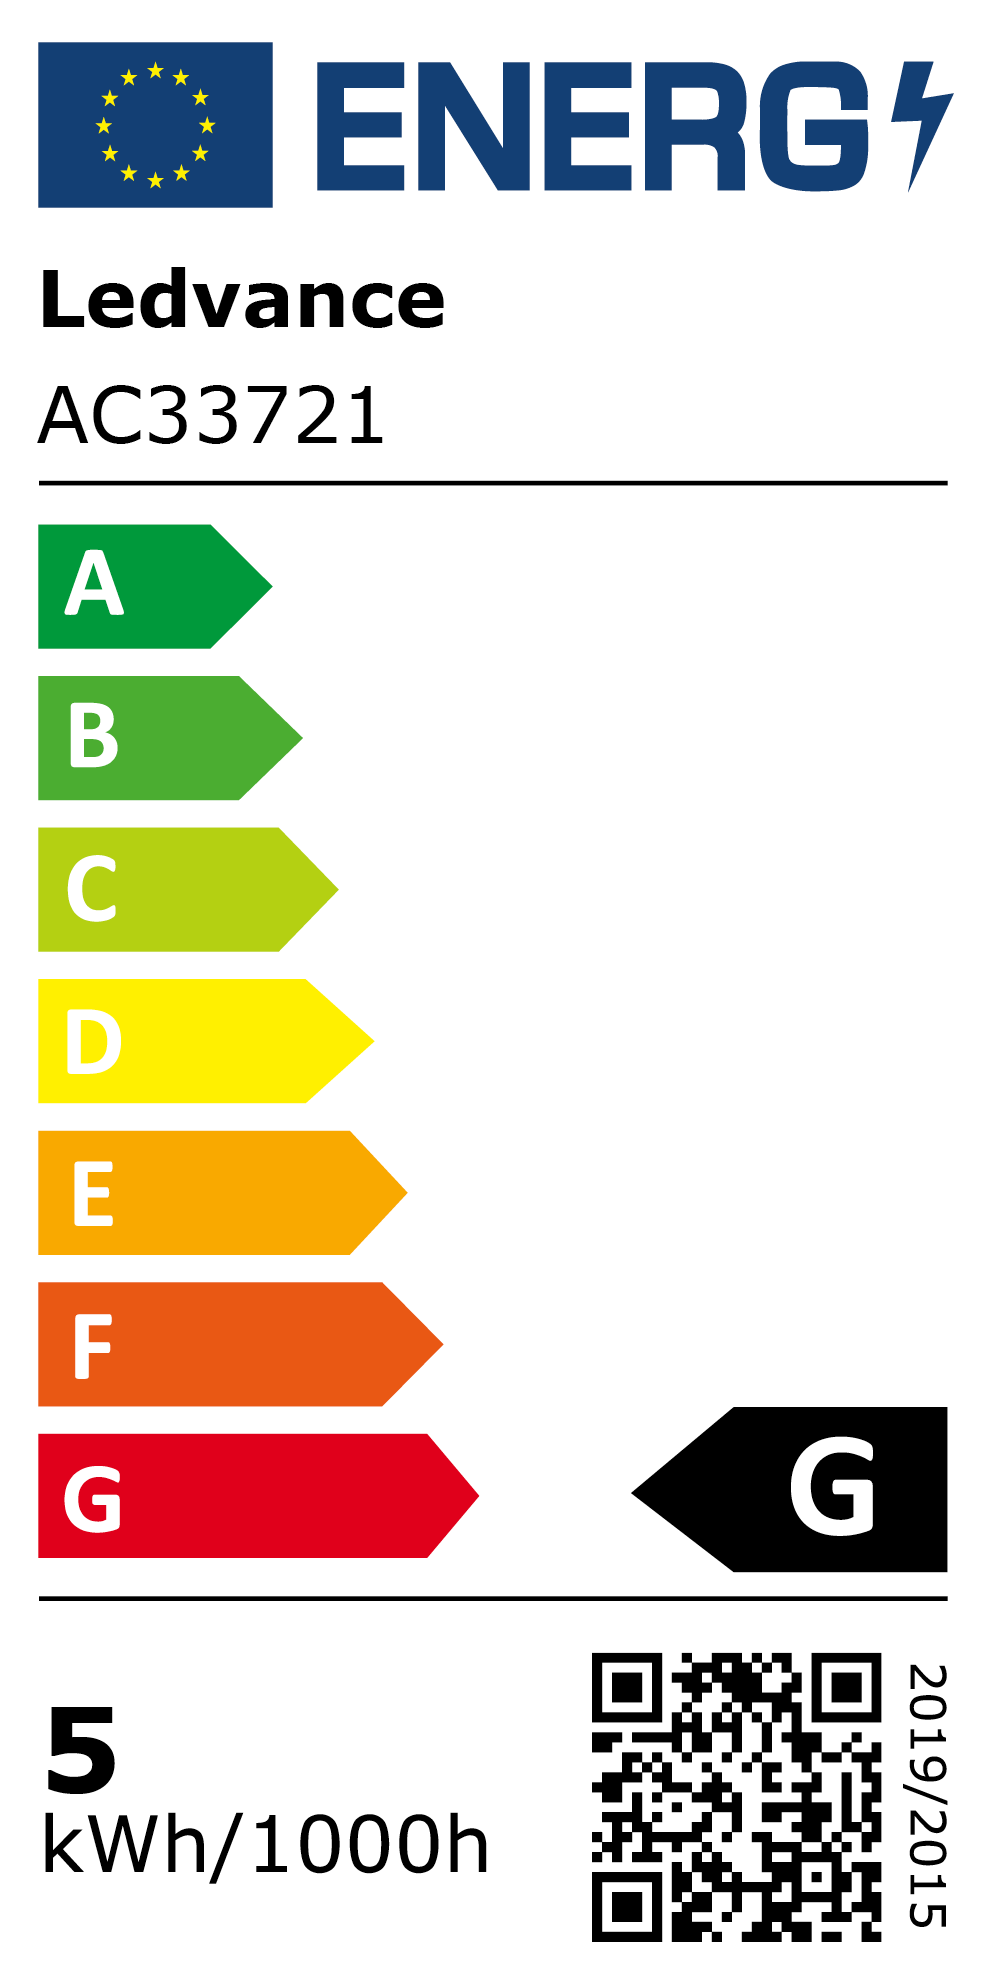 New 2021 Energy Rating Label: MPN AC33721